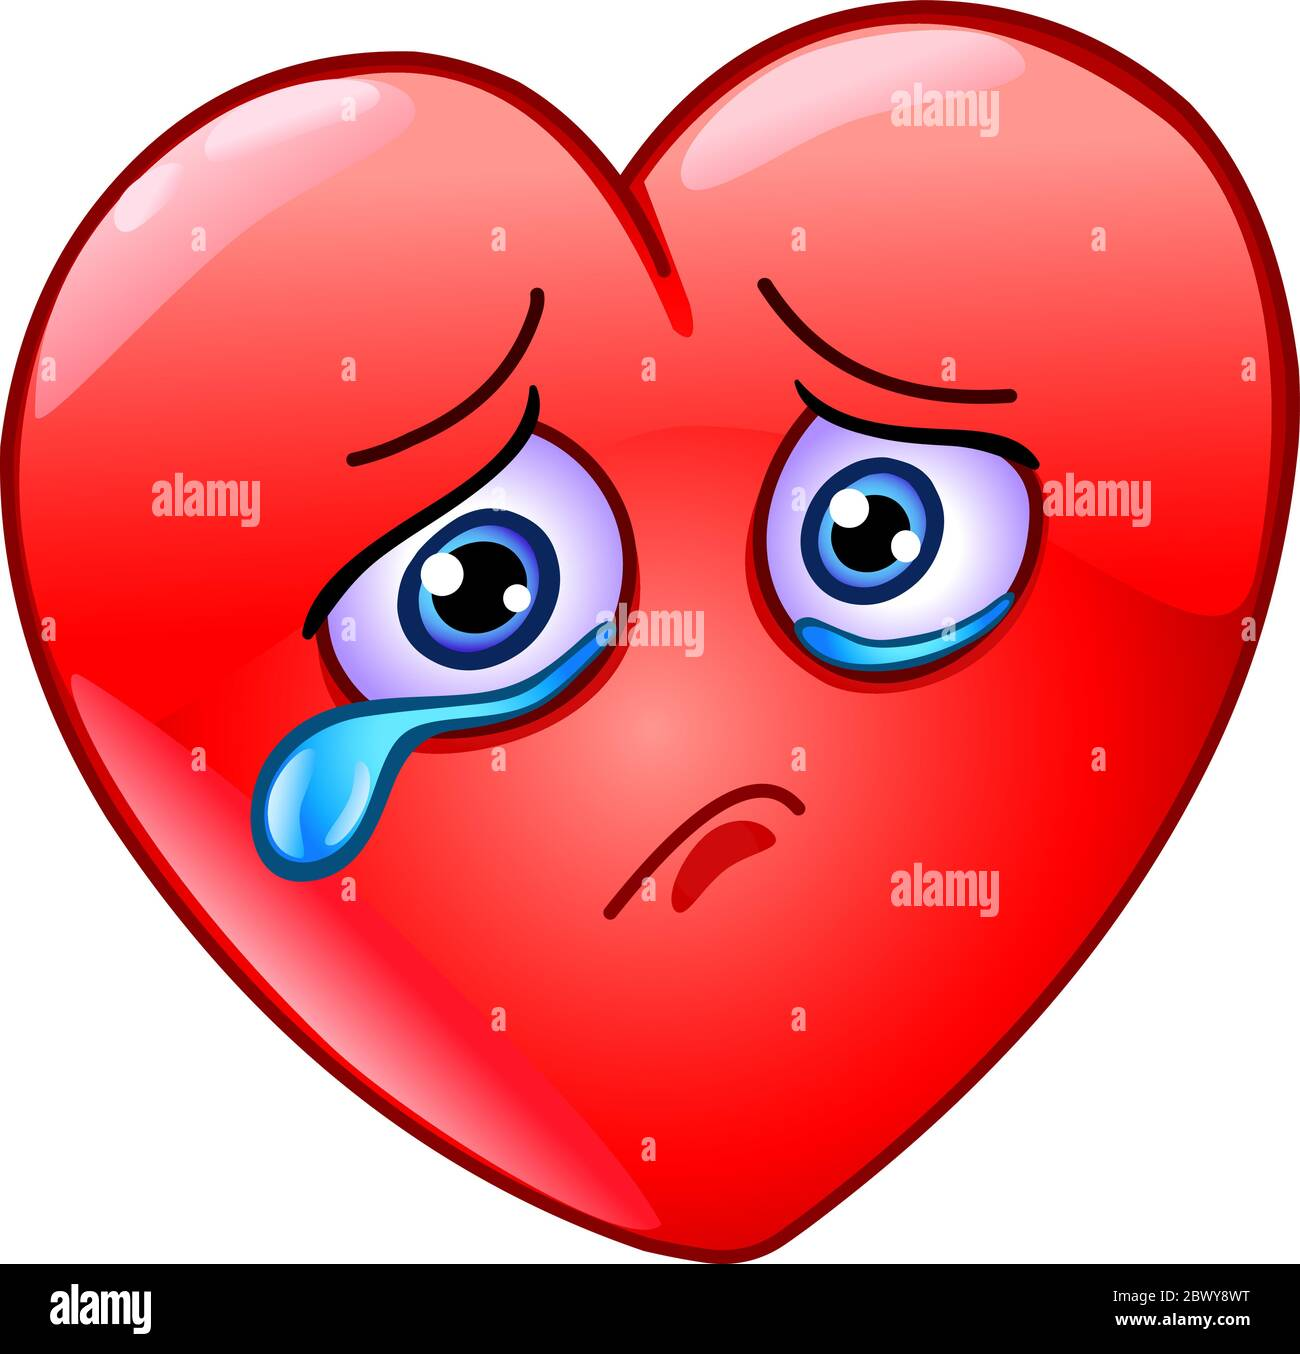 sad and crying heart emoticon 2BWY8WT